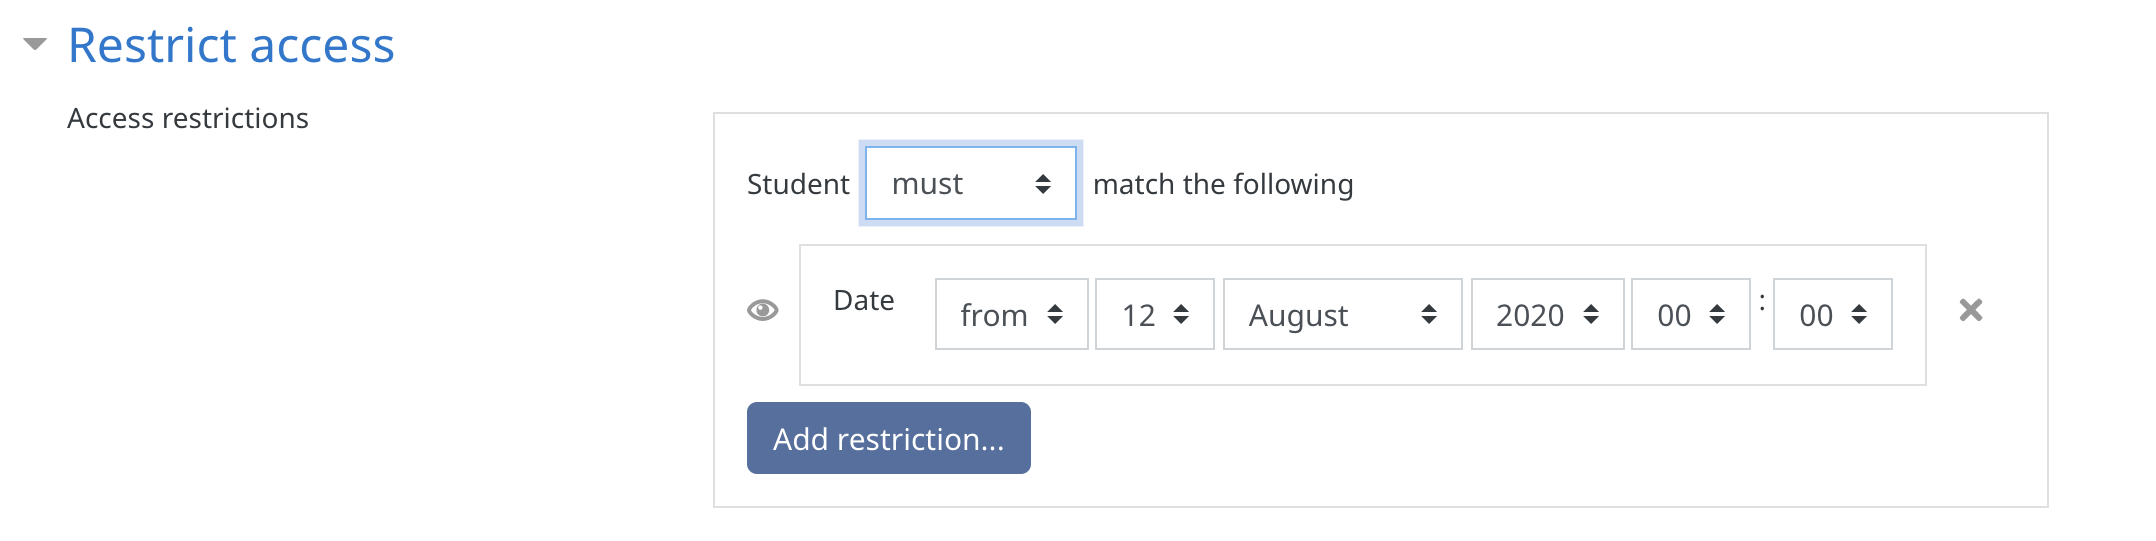 Restrict Access options in the Group Choice Activity settings